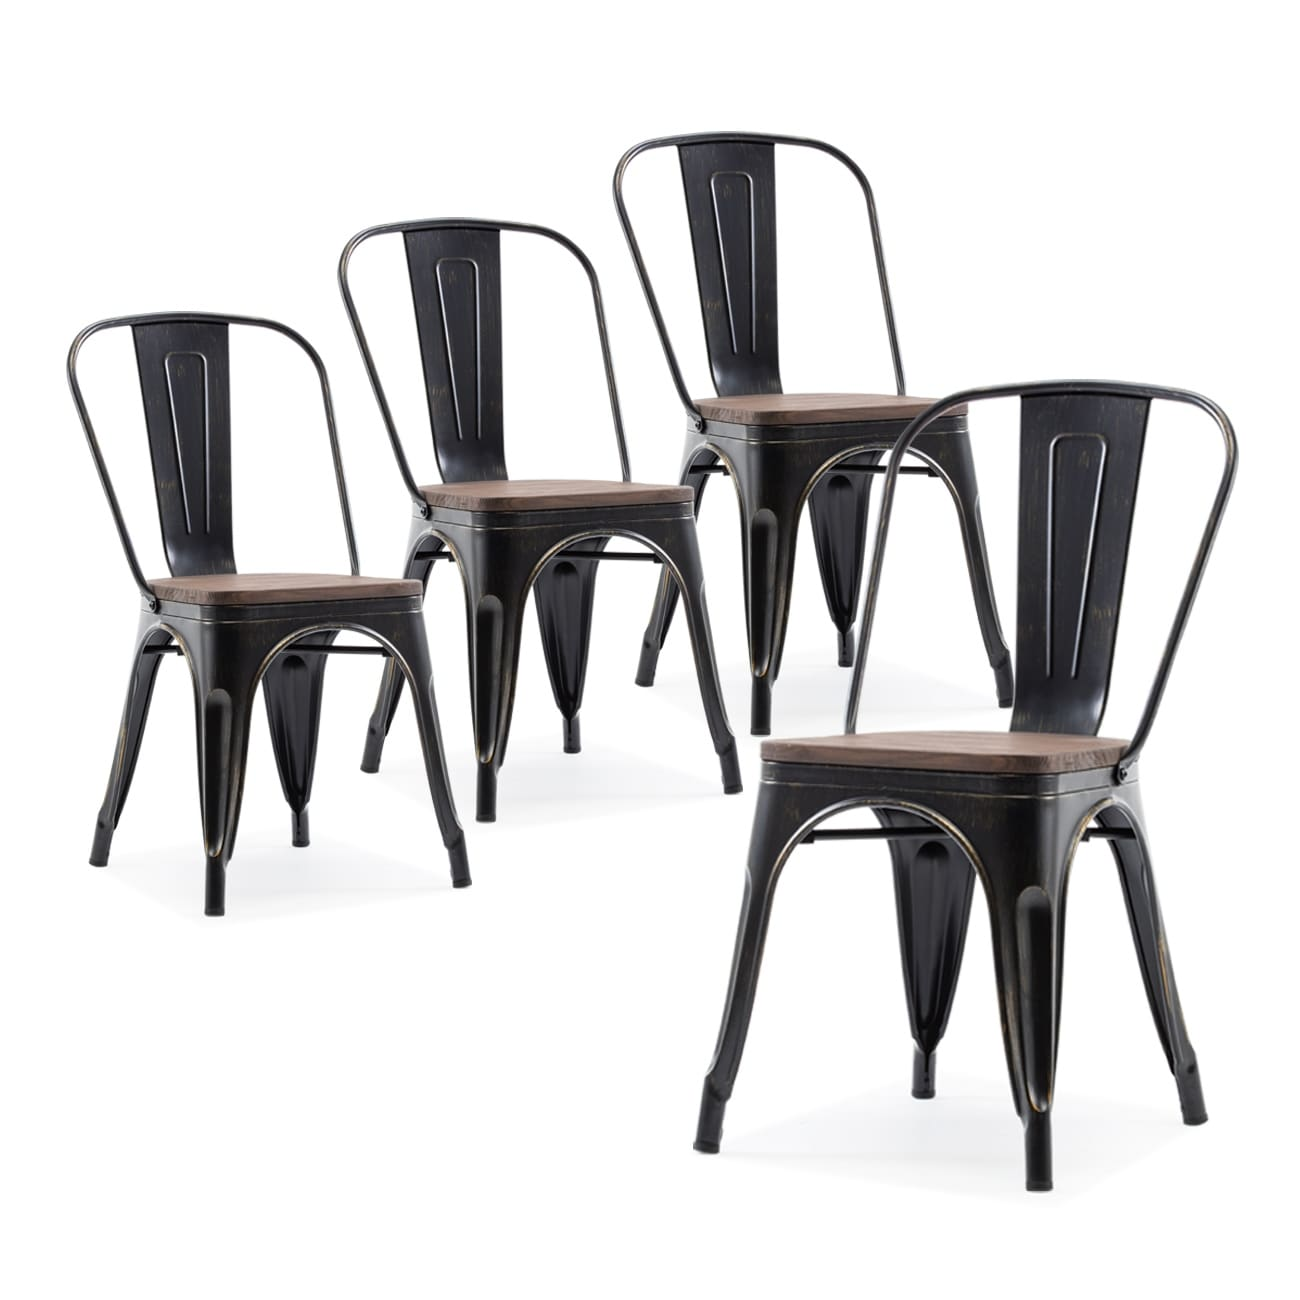 Belleze Set Of 4 Wood Seat Cafe Bar Stool Modern Metal Industrial Stackable Bistro Dining Chairs Antique Black